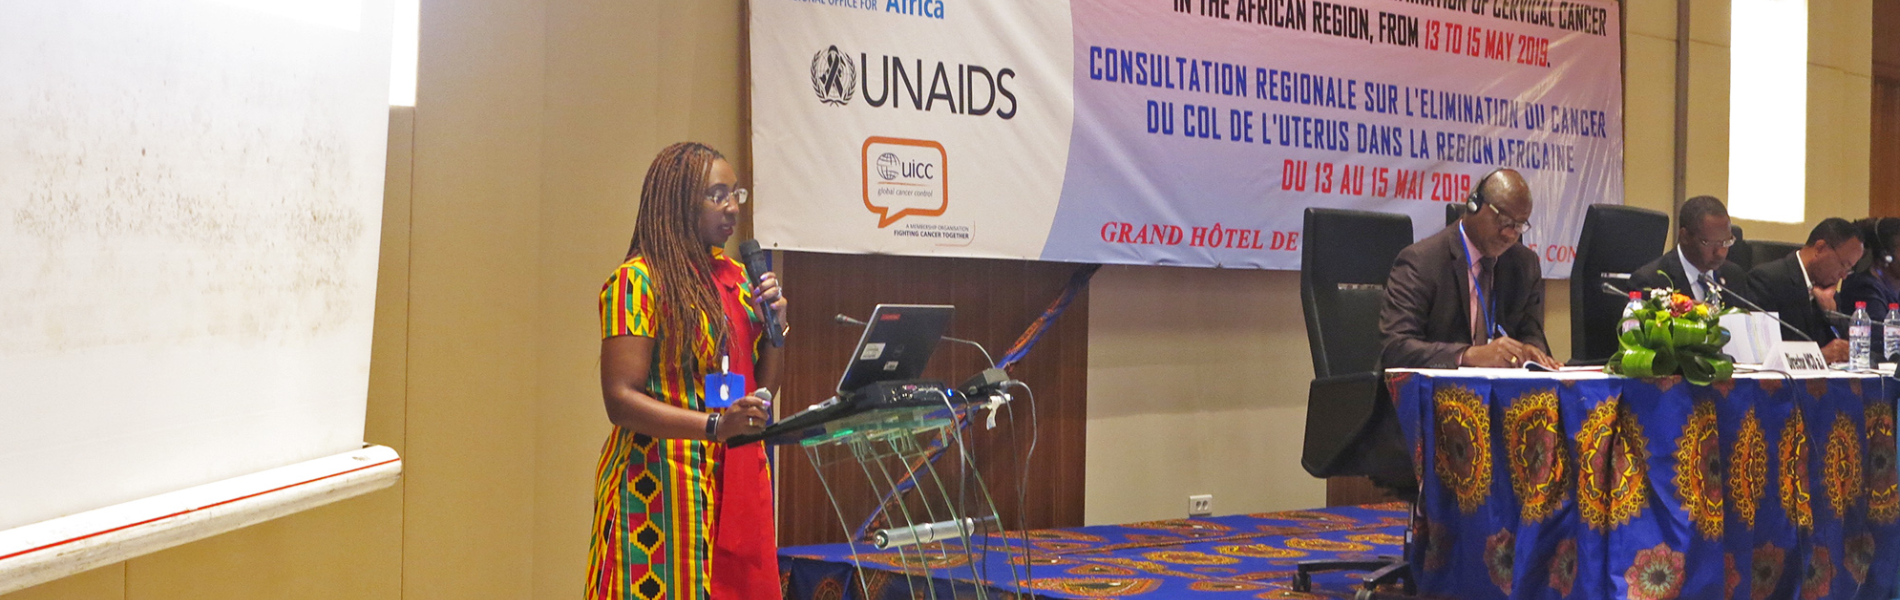 A consultation was held from 13-15 May in Brazzaville